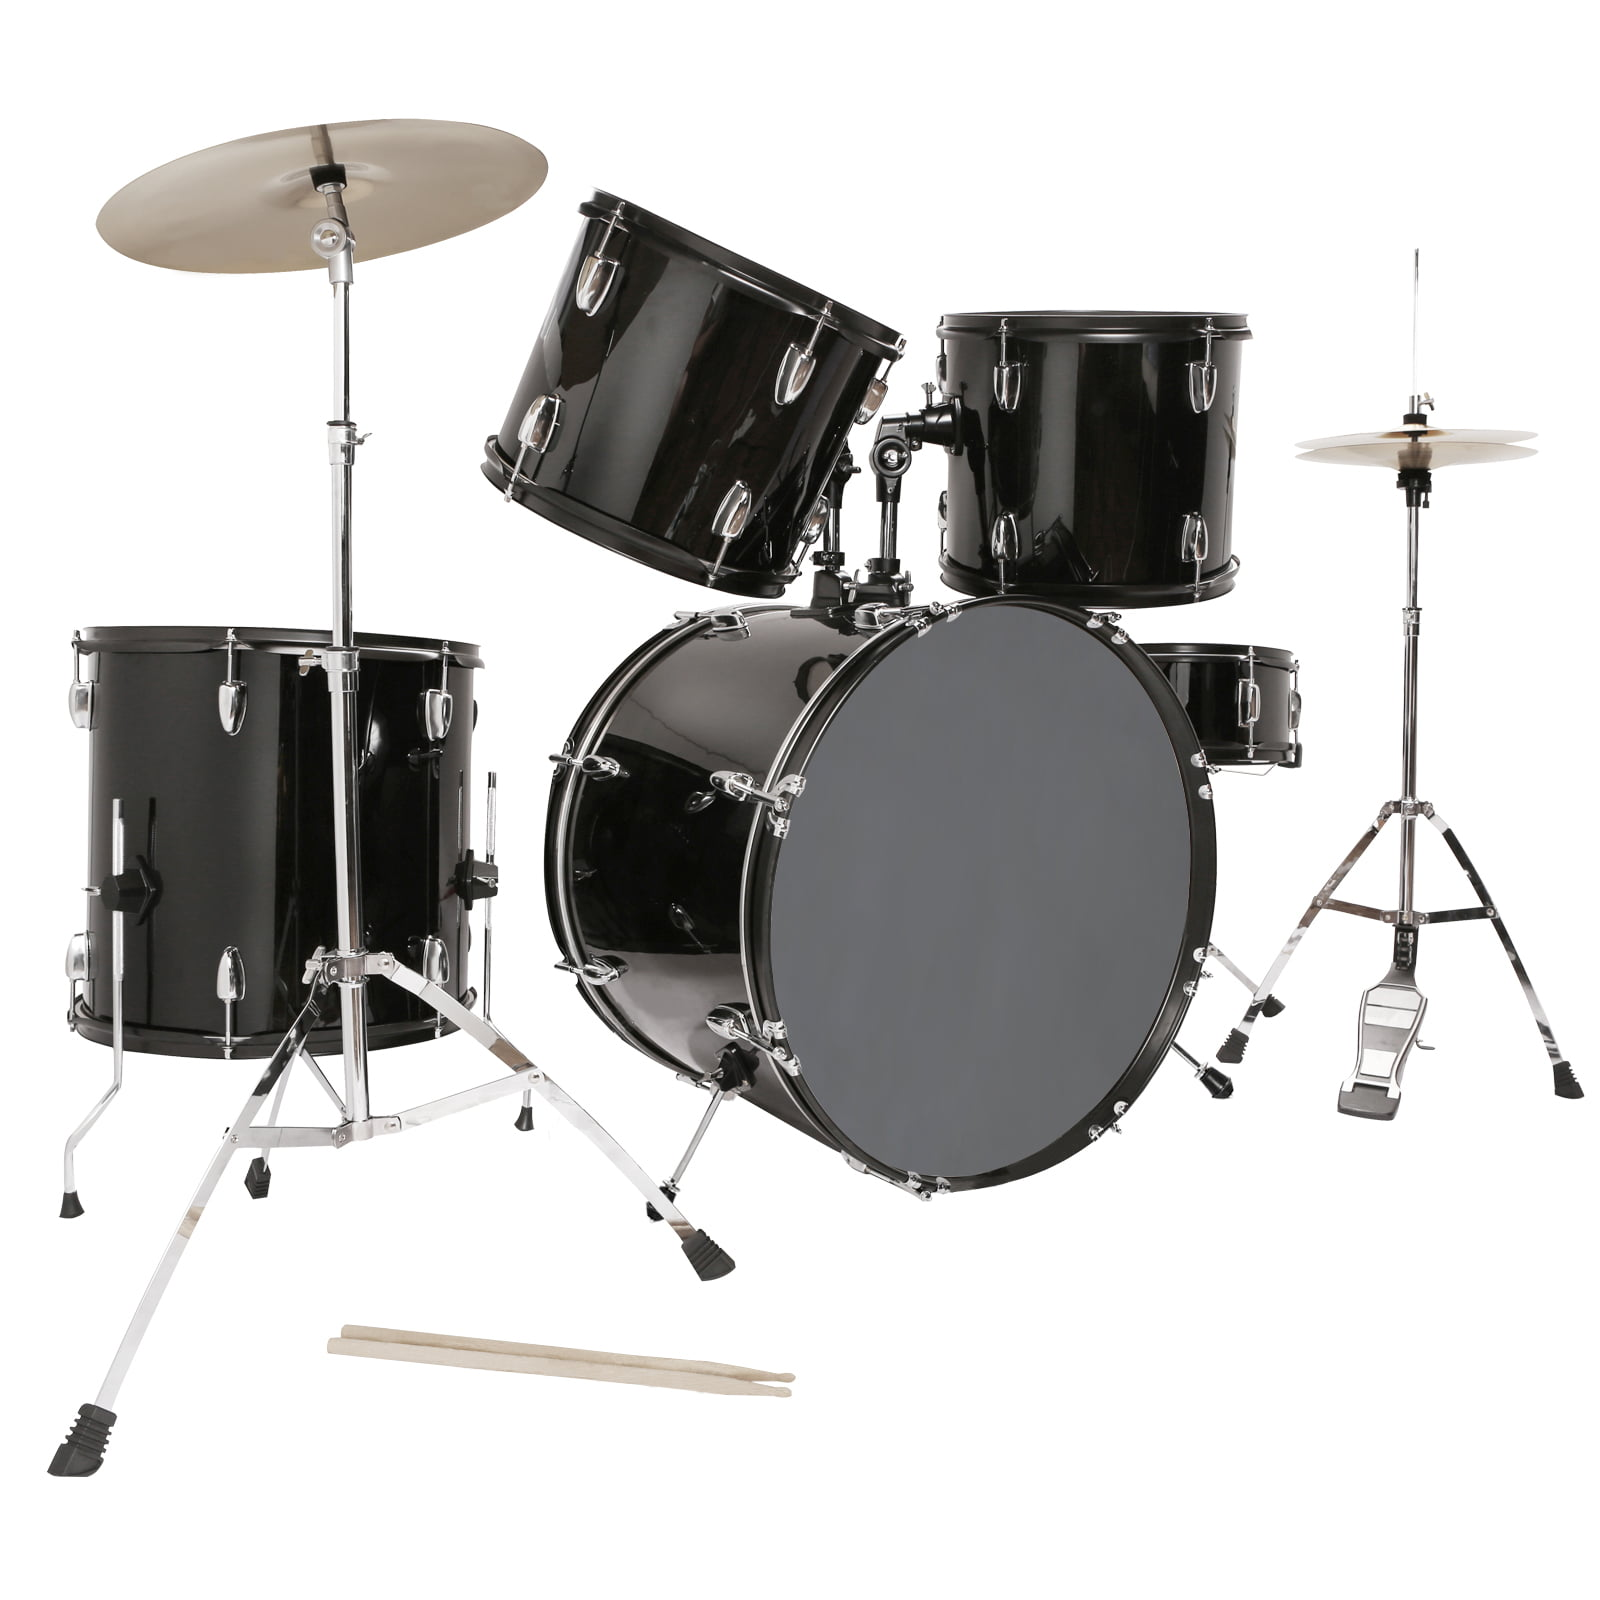 5 Piece Complete Adult Drum Set Cymbals Full Size Kit w  Stool & Sticks Black by Uenjoy